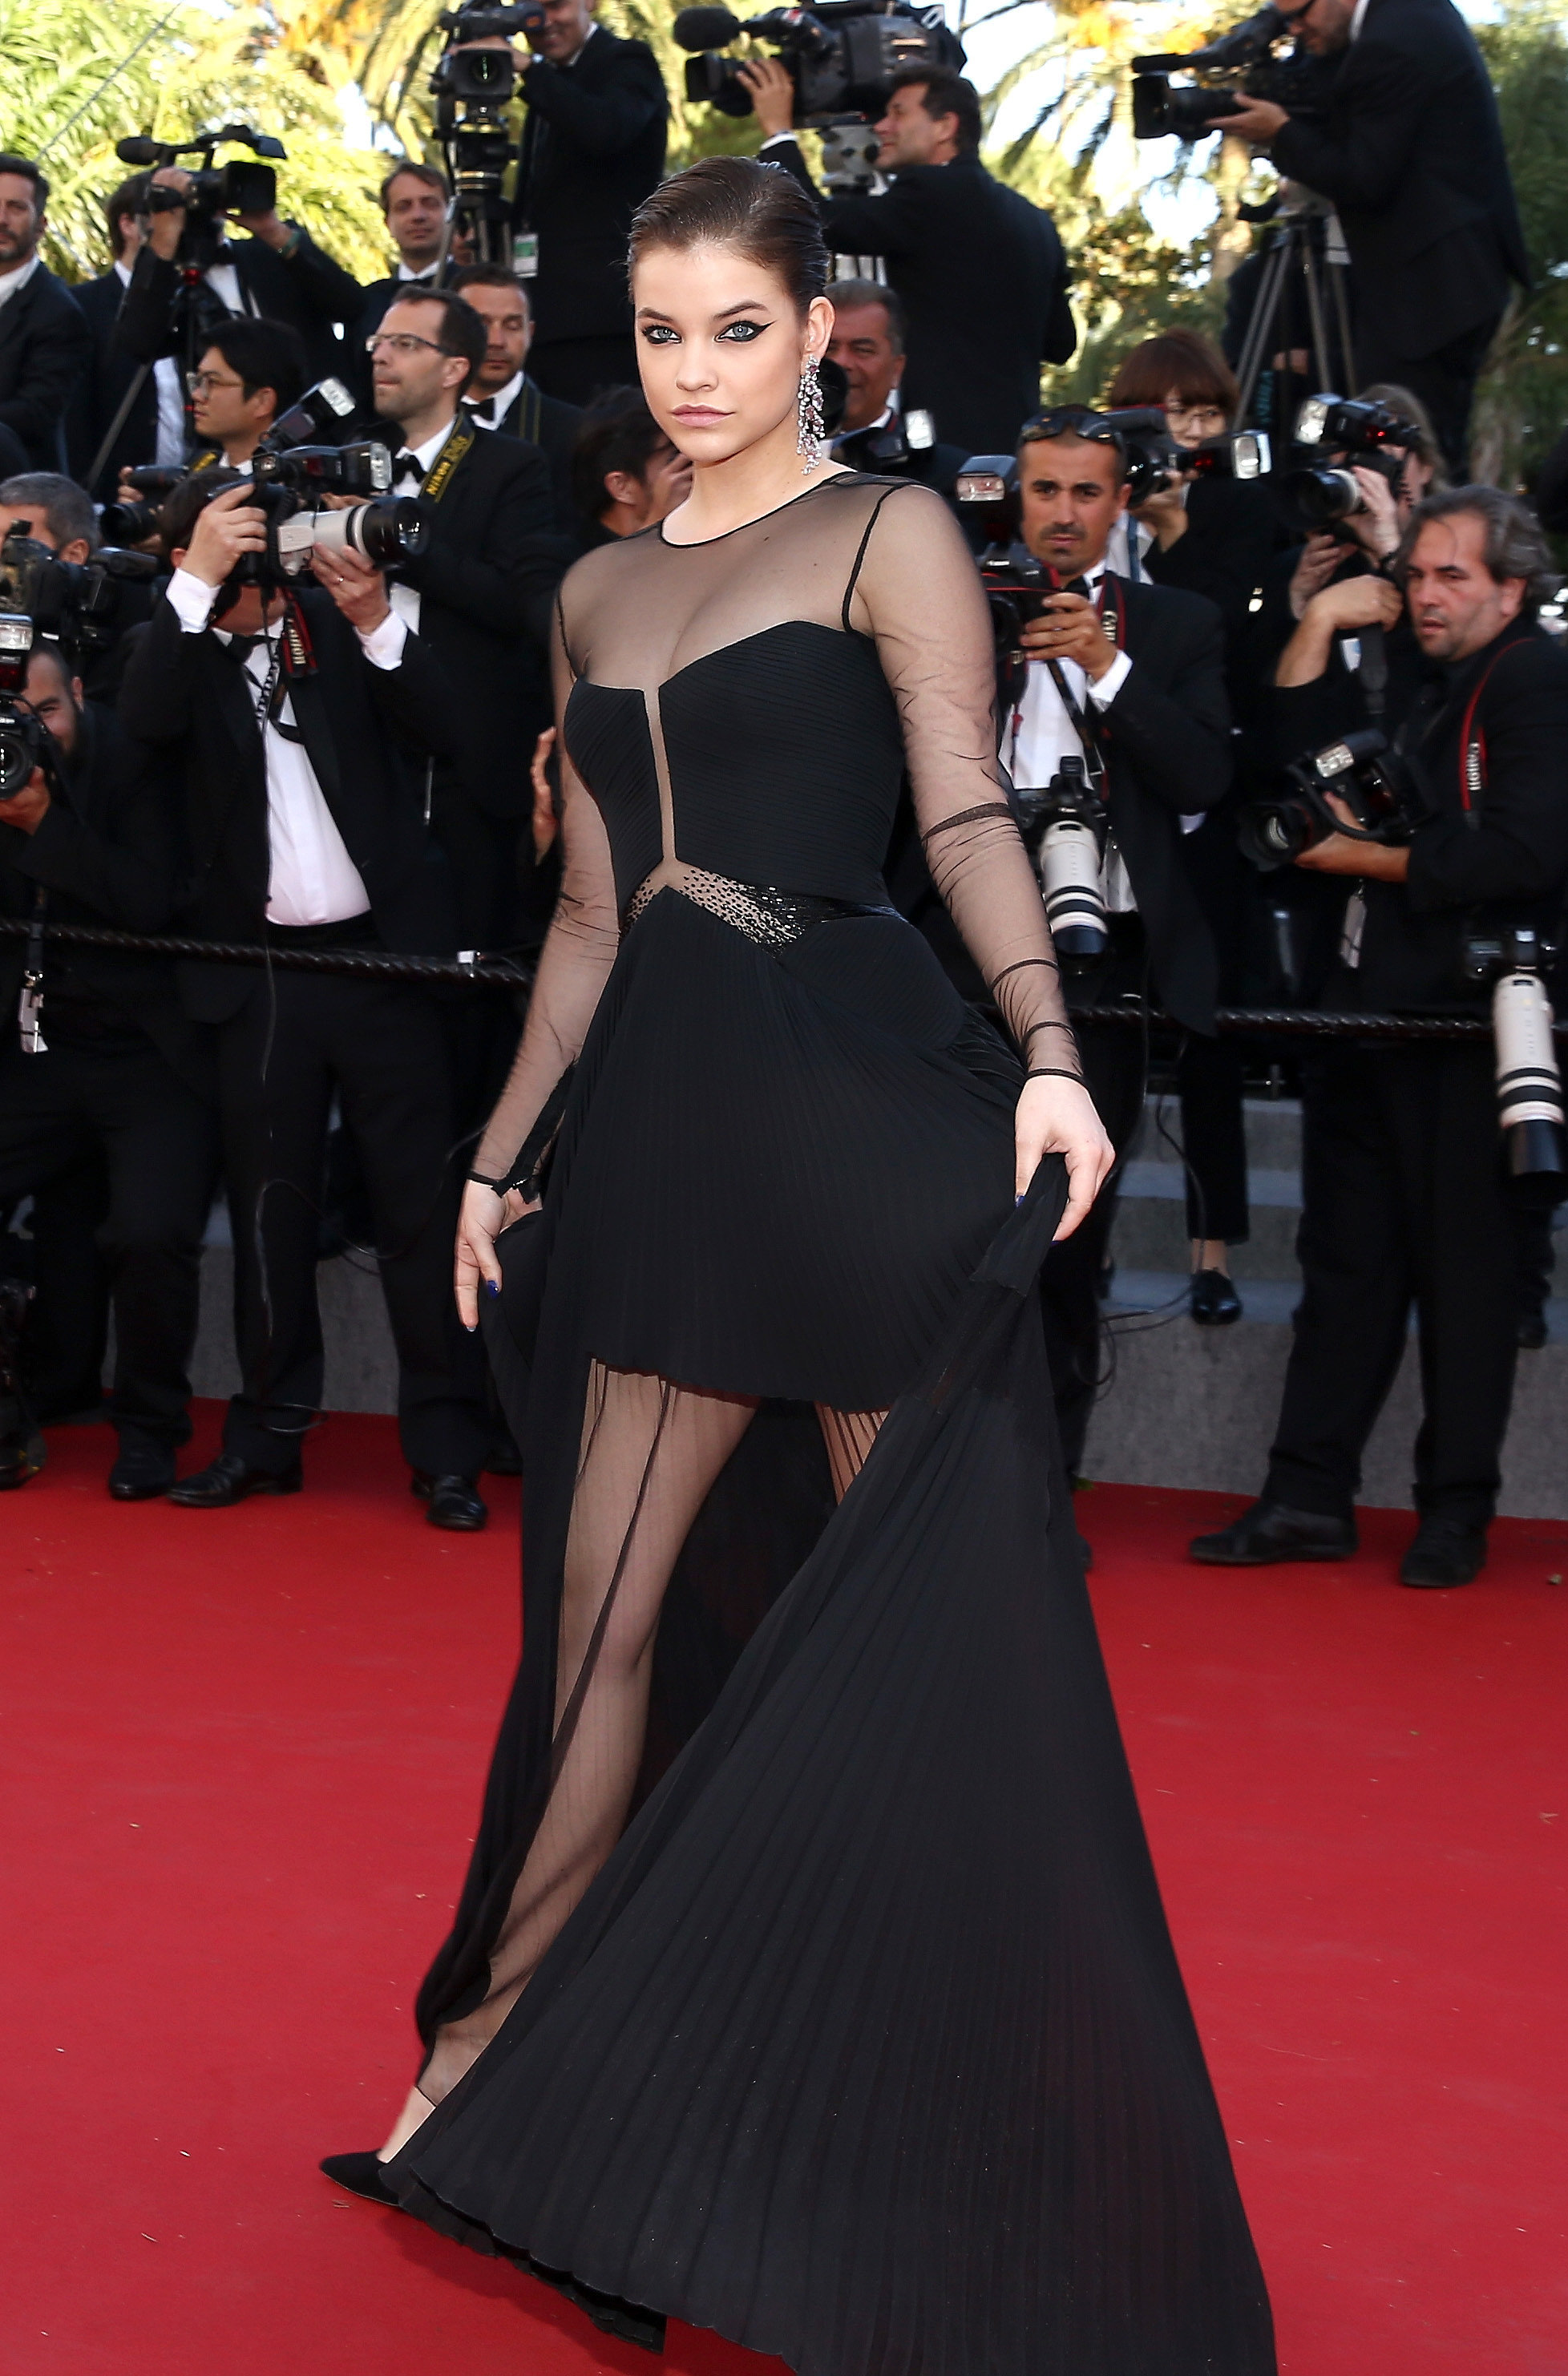 Barbara palvin the prettiest dresses we 39 ve ever seen walked the red carpet at cannes - Barbara palvin red carpet ...